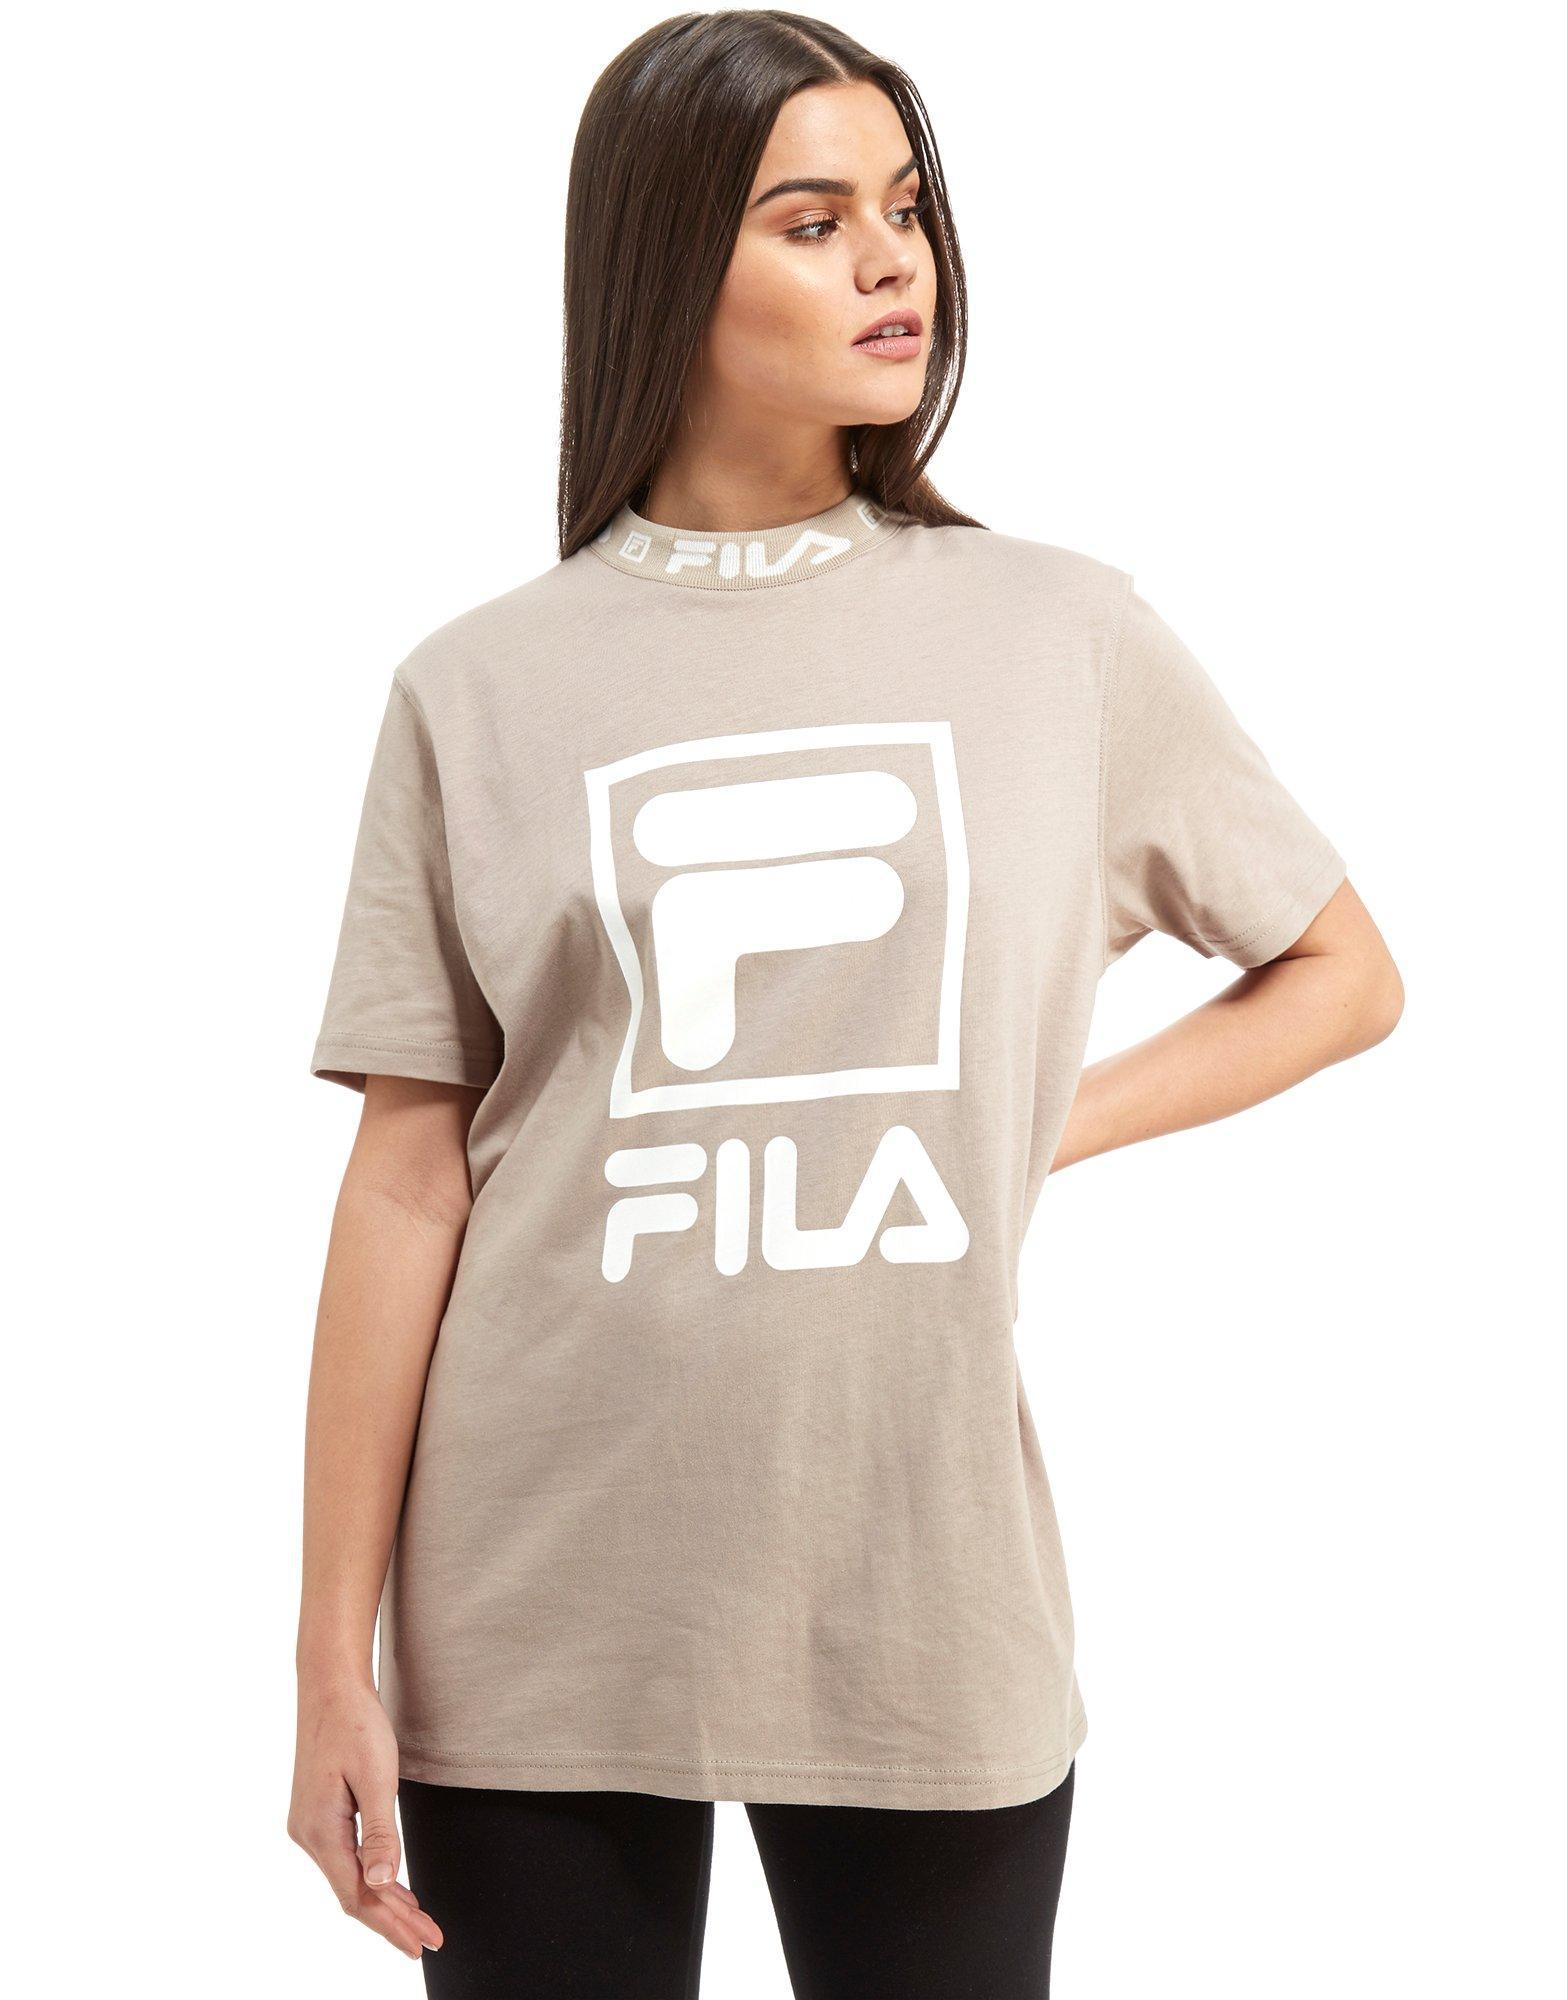 Fila Cotton Jd Tape Bf T Beige $ in Natural - Lyst